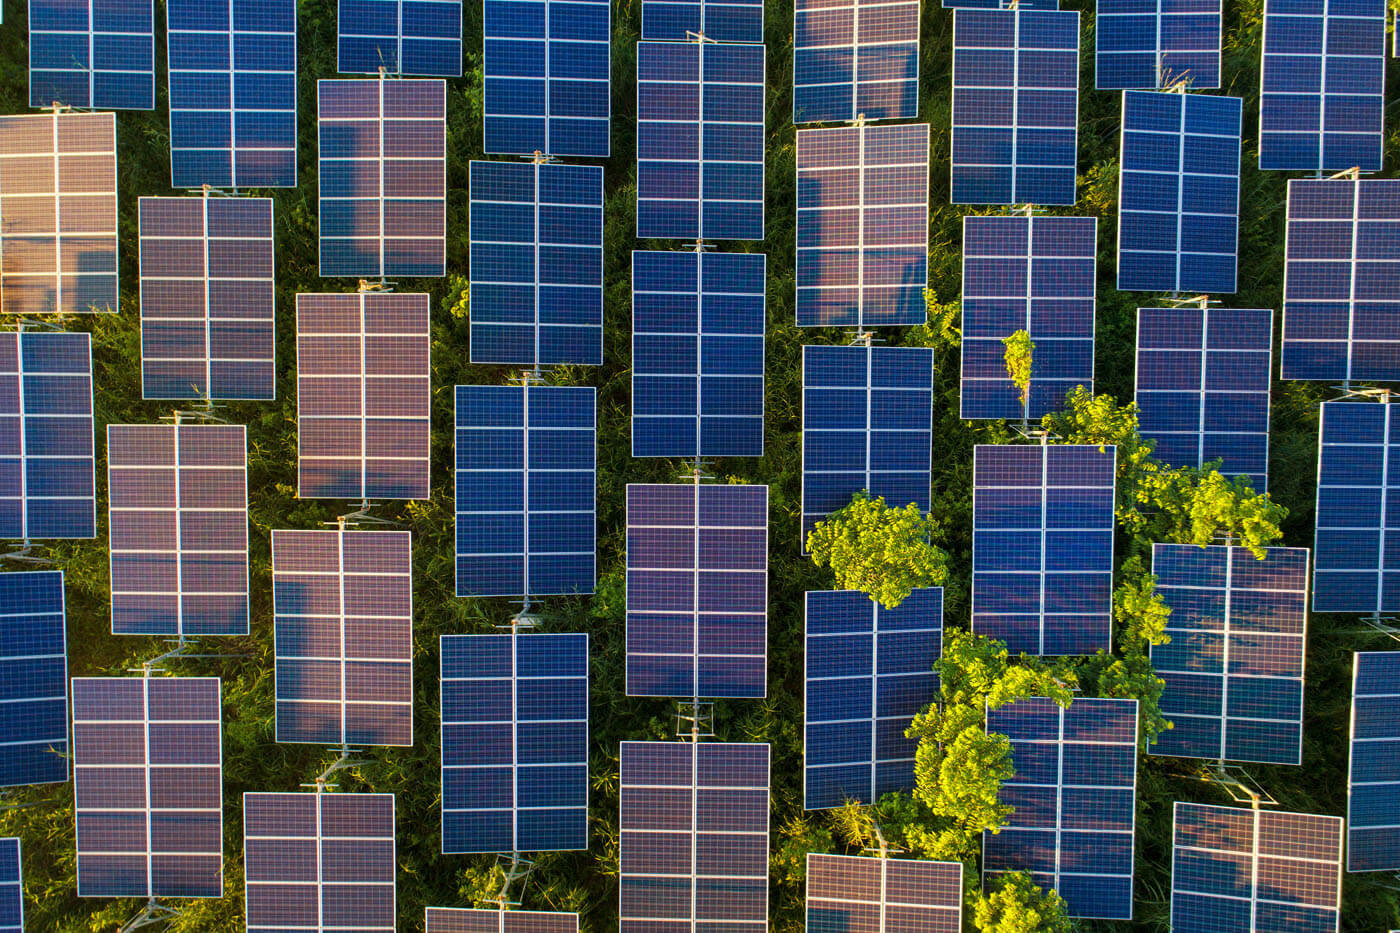 Solar panels surrounded by trees.